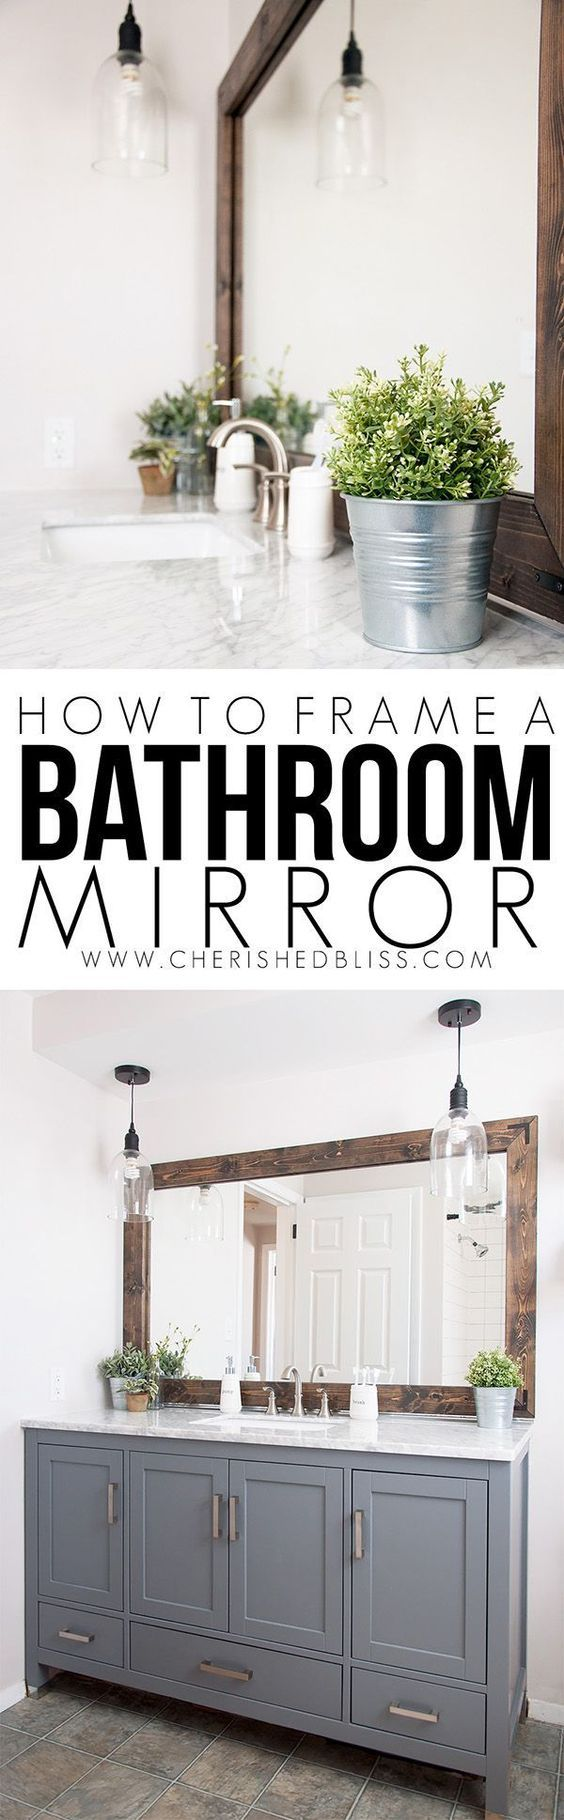 cool What's New in the World of Farmhouse Home Decor DIY and More - Page 7 of 12 - The Cottage Market